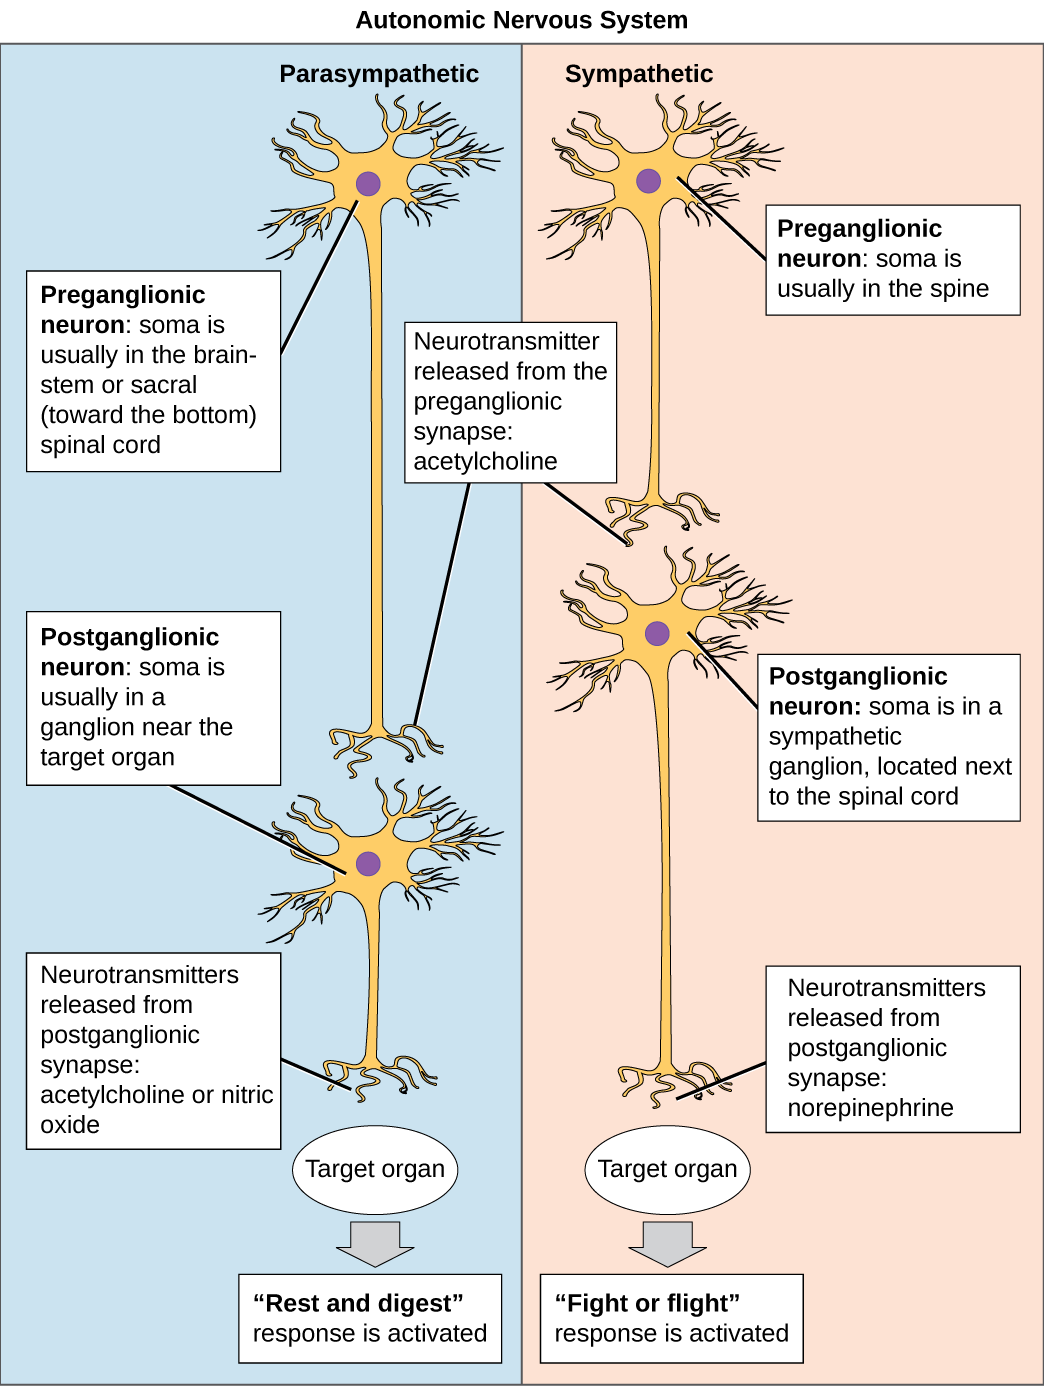 Image showing Autonomic System neurons conduct signals via the preganglionic neurons to postganglionic neurons to the target organs.